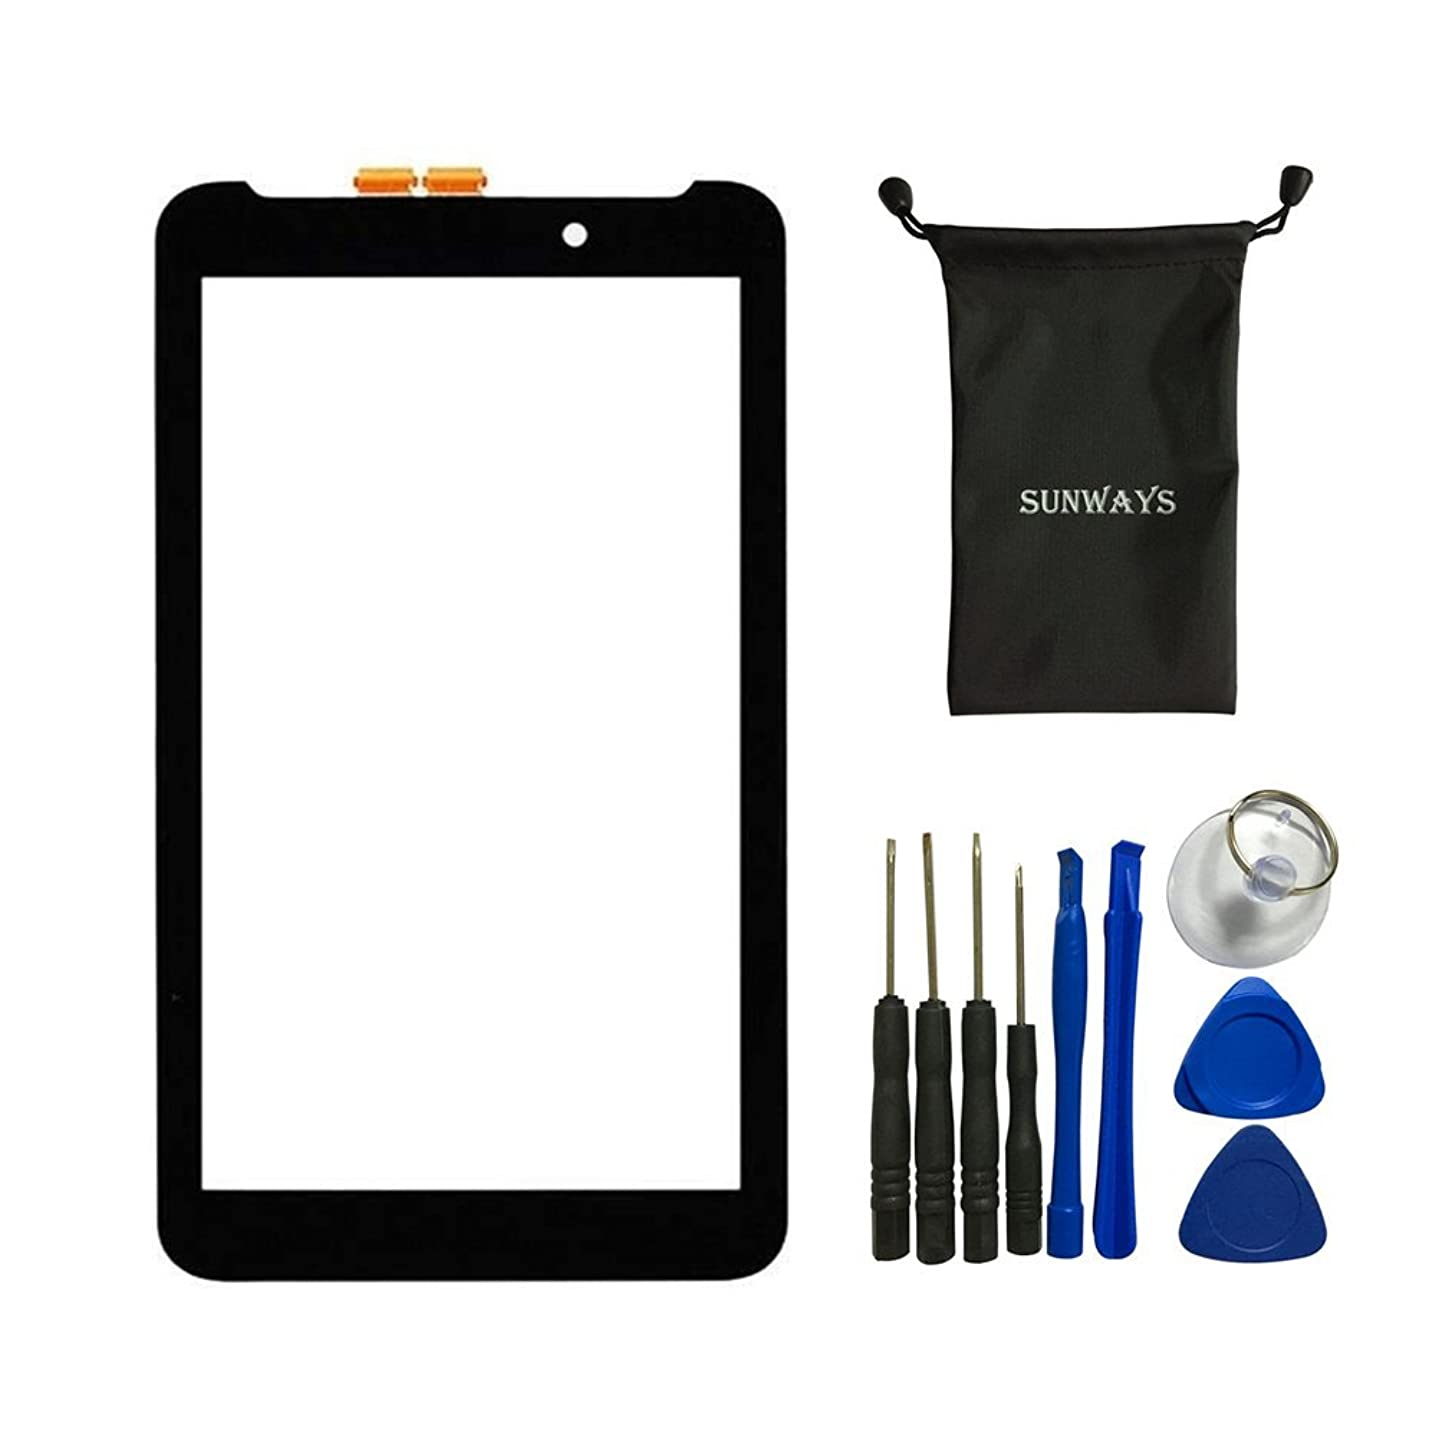 Sunways Touch Digitizer Glass Lens Screen Replacement for ASUS Fonepad 7 FE170CG ME170CG ME170C ME170 with Device Opening Tools